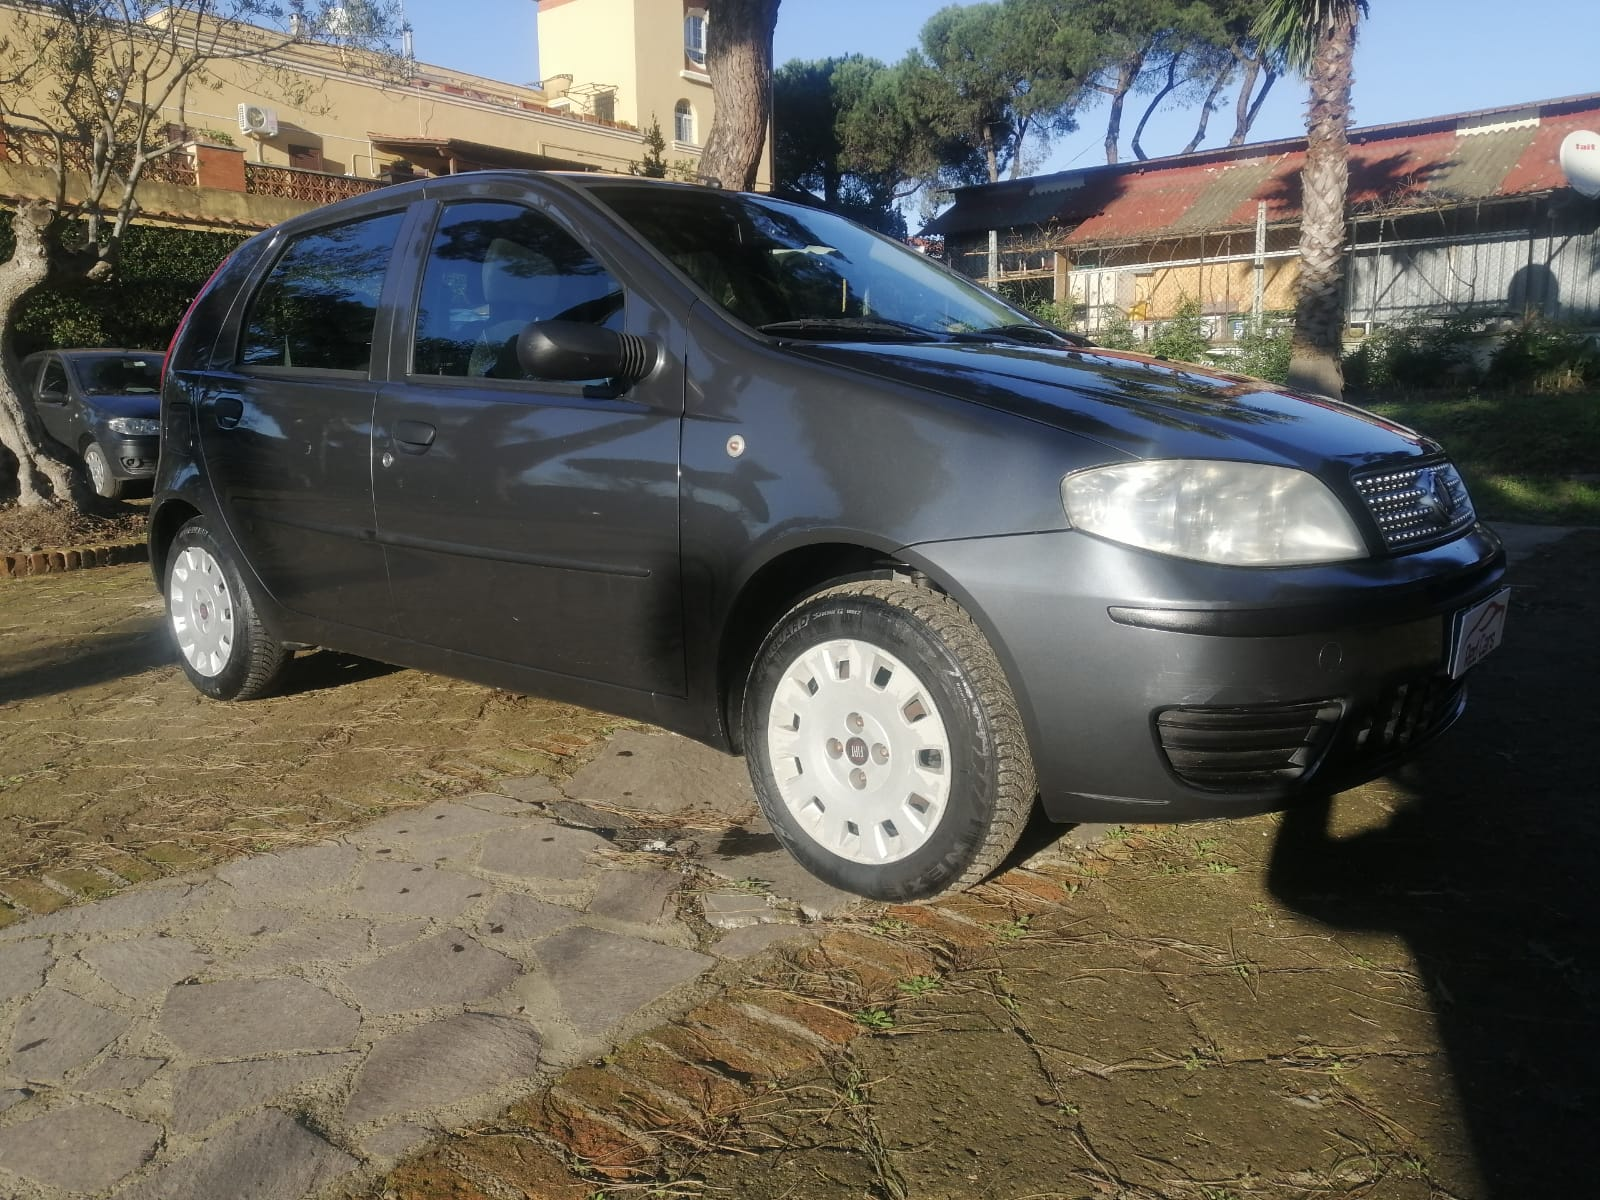 vendita FIAT PUNTO 1.2 NATURAL POWER Red cars via cropani 65 Roma